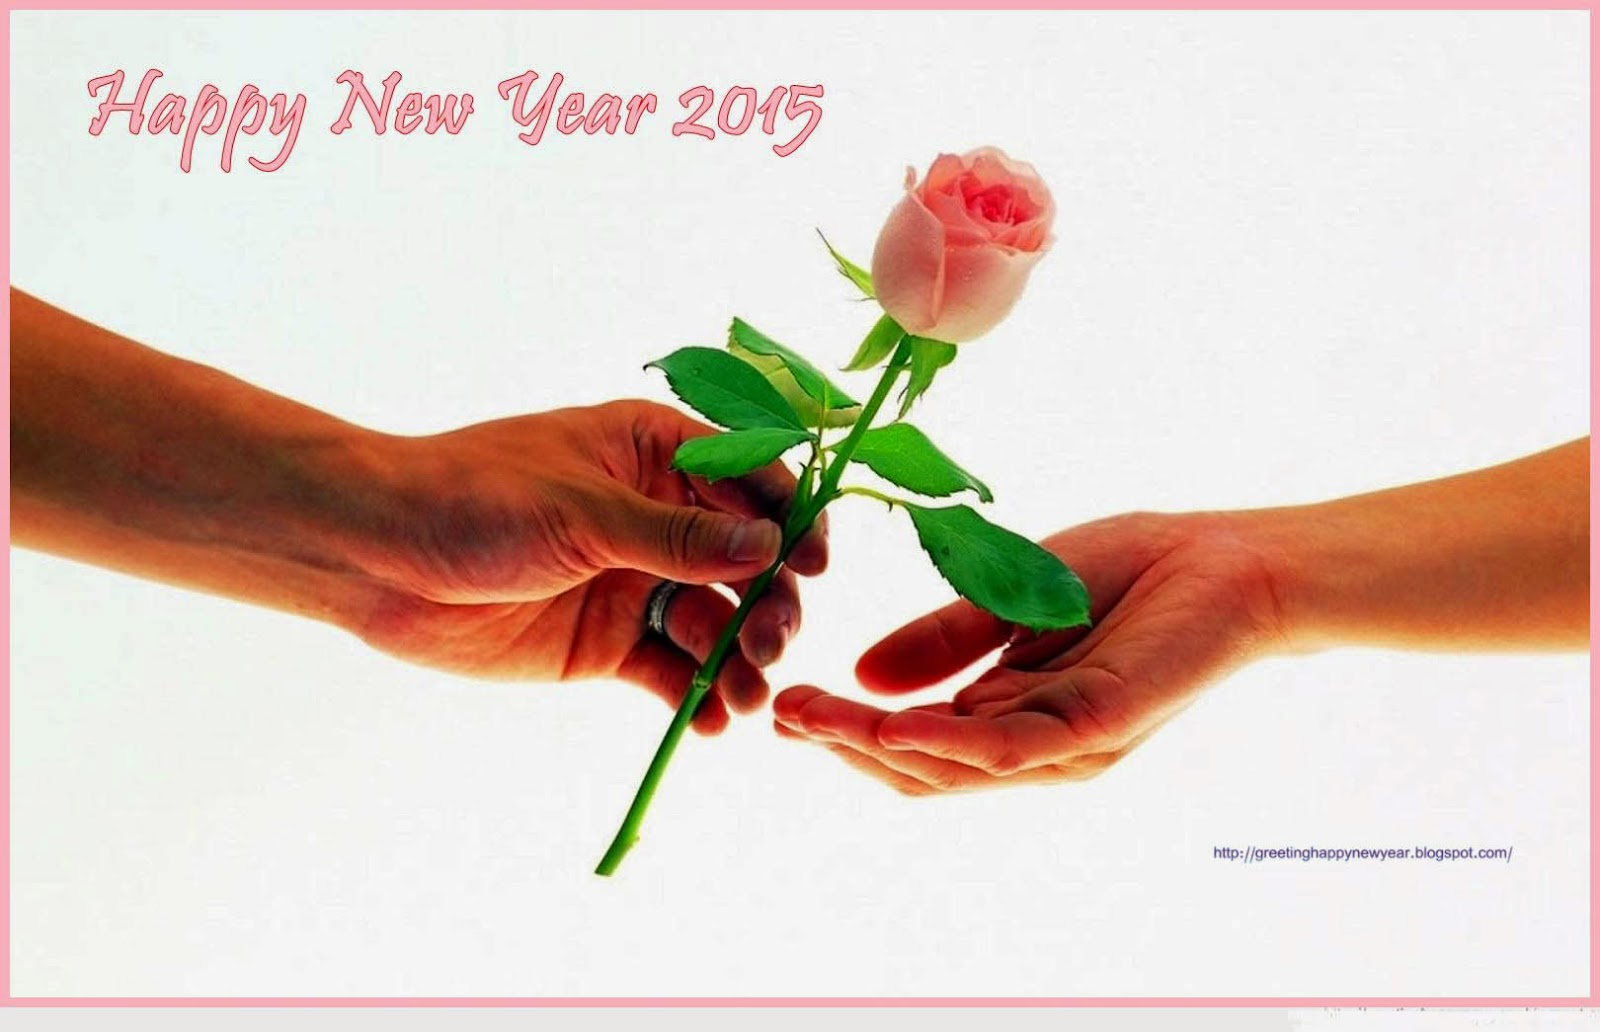 Happy New Year 2015 Roses Wishing Cards